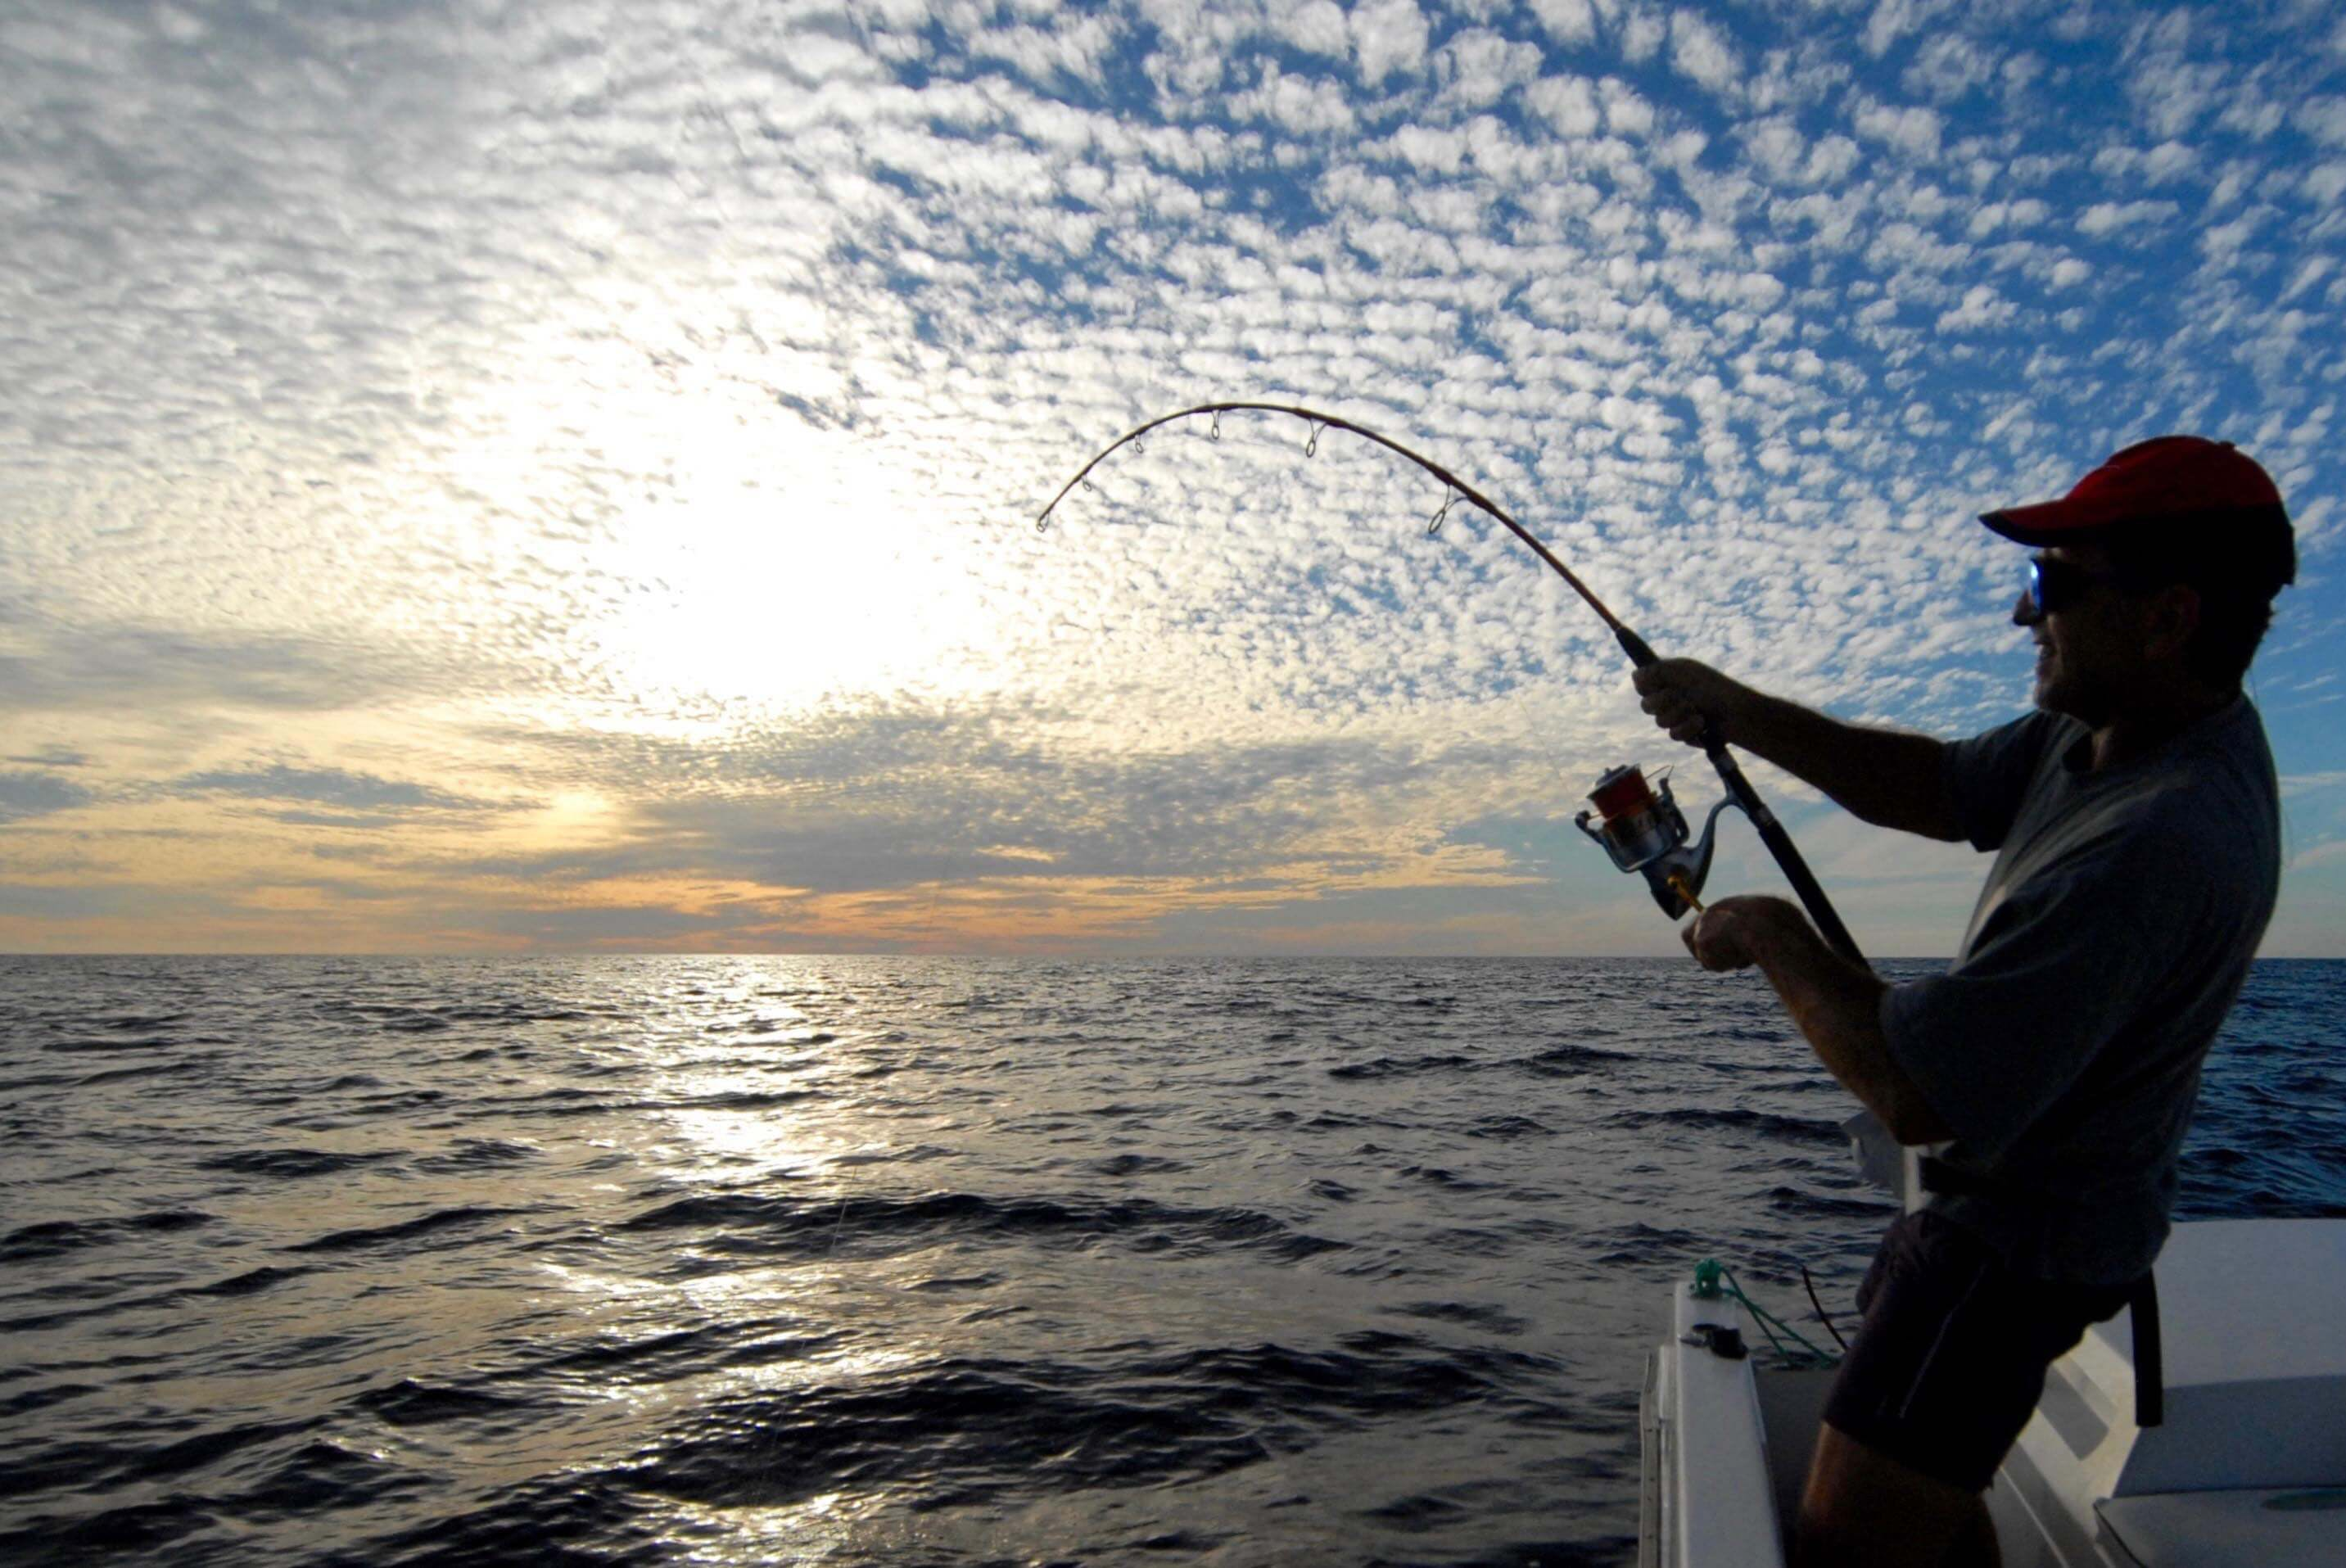 Weather conditions, statistics and analysis of your catches